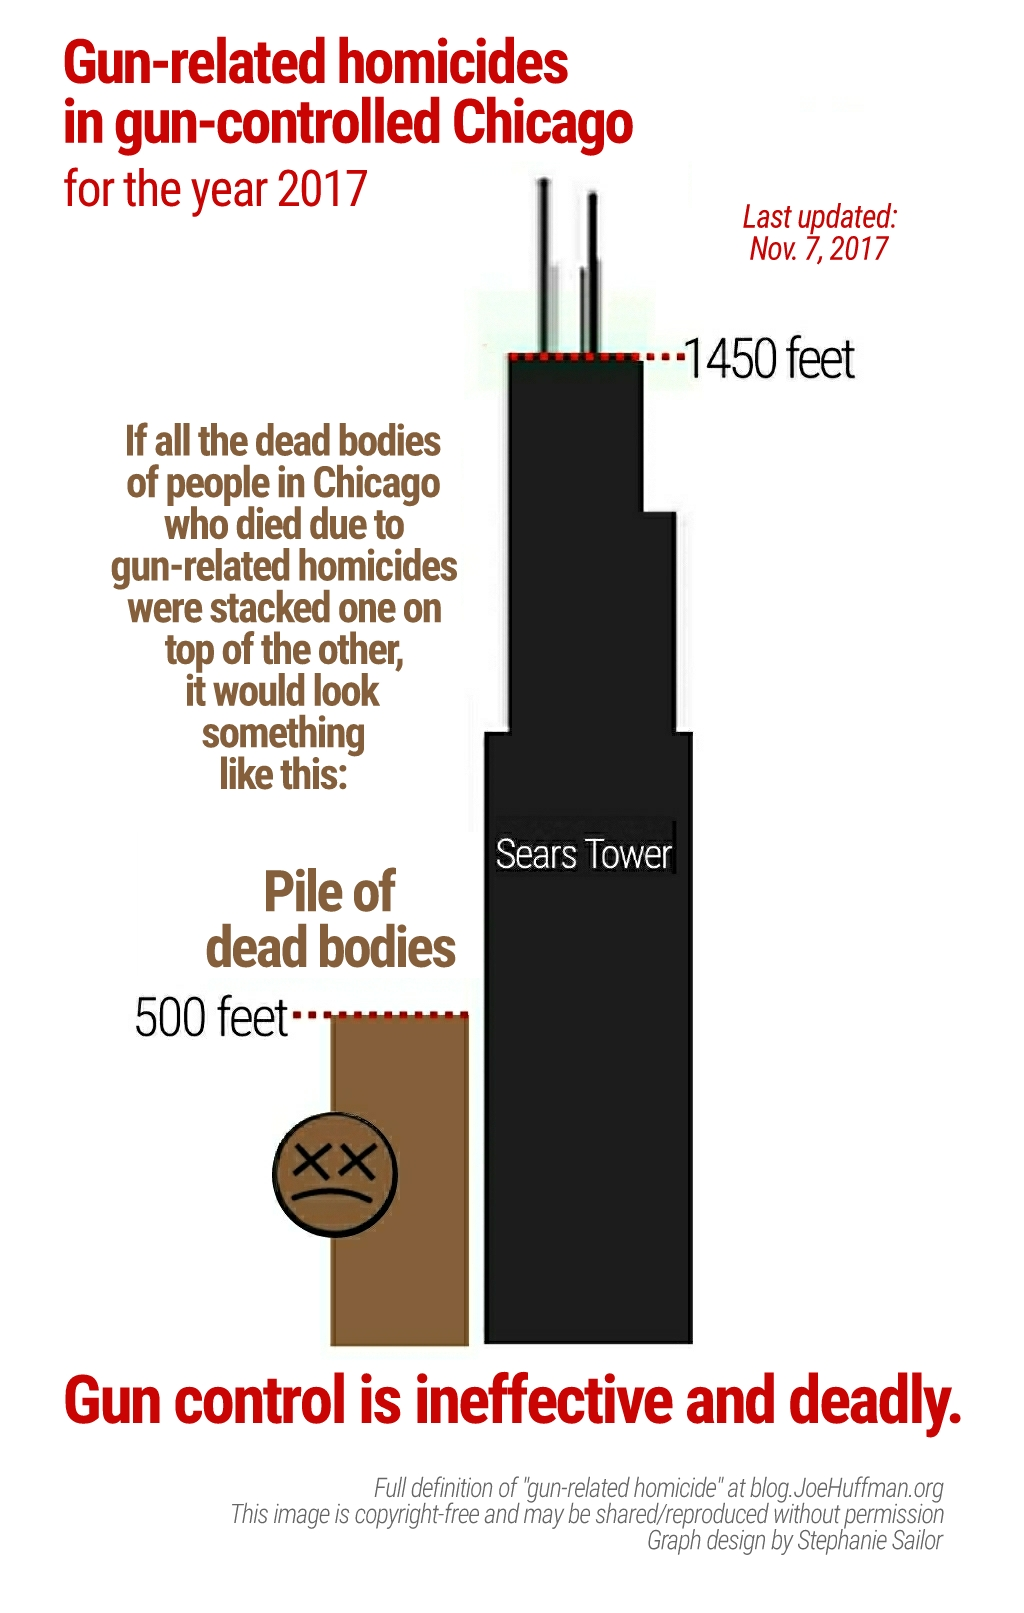 If you were to stack bodies of people who died in gun-related homicides in Chicago 2017, it would be nearly 500-feet tall